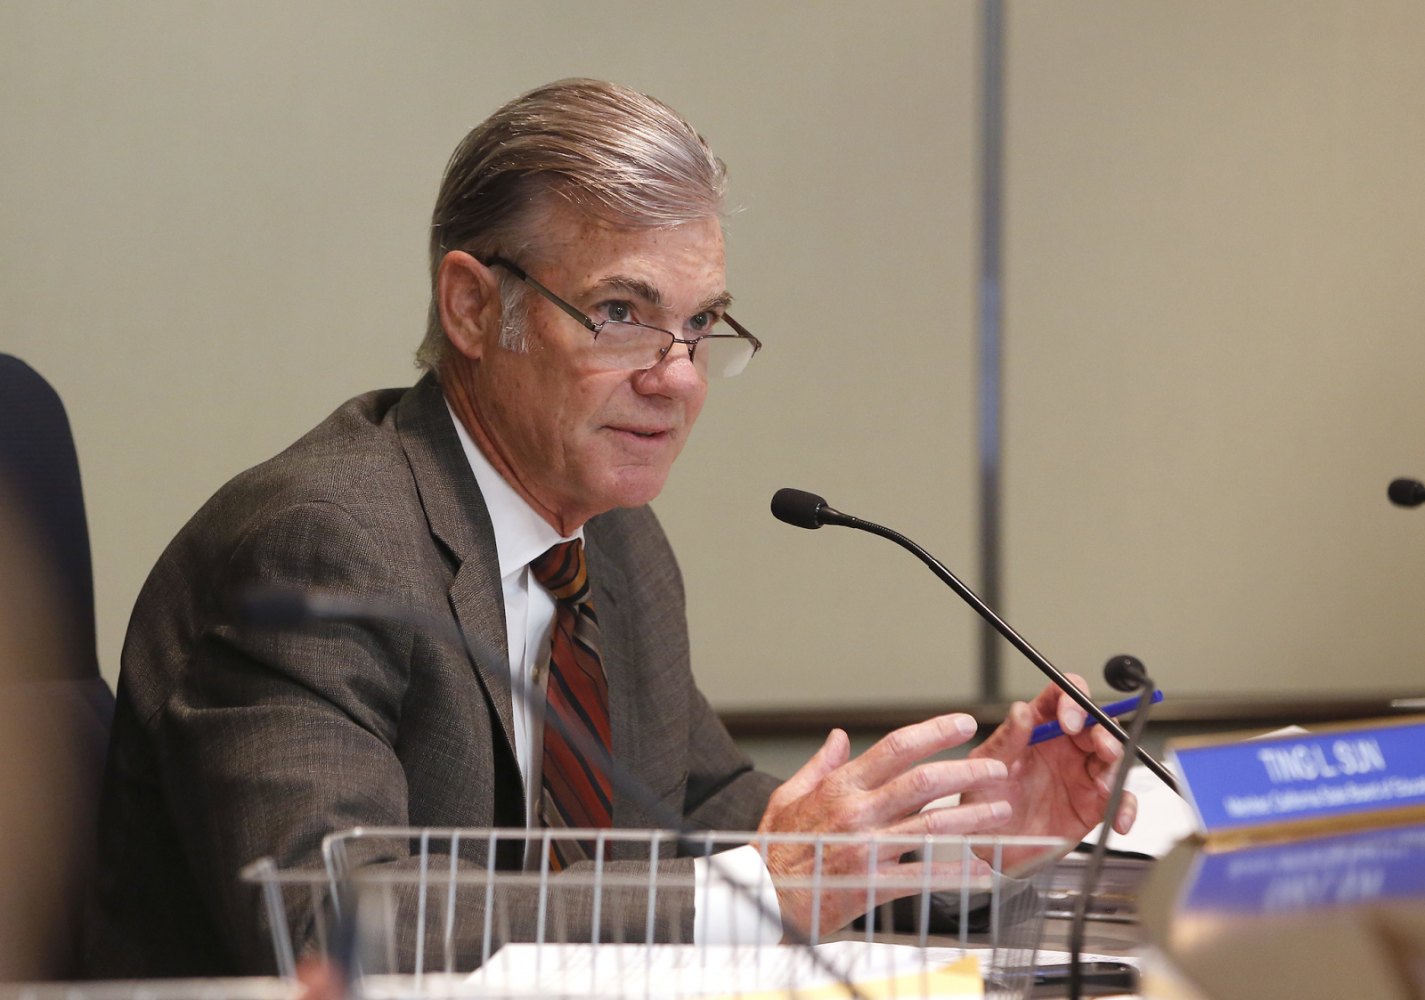 California State Superintendent of Public Instruction Tom Torlakson encouraged FUSD school districts and counties to release Safety Resolutions assuring the safety of all students, regardless of immigration status, ethnicity, etc. His letter can be found on the California Department of Education's website.